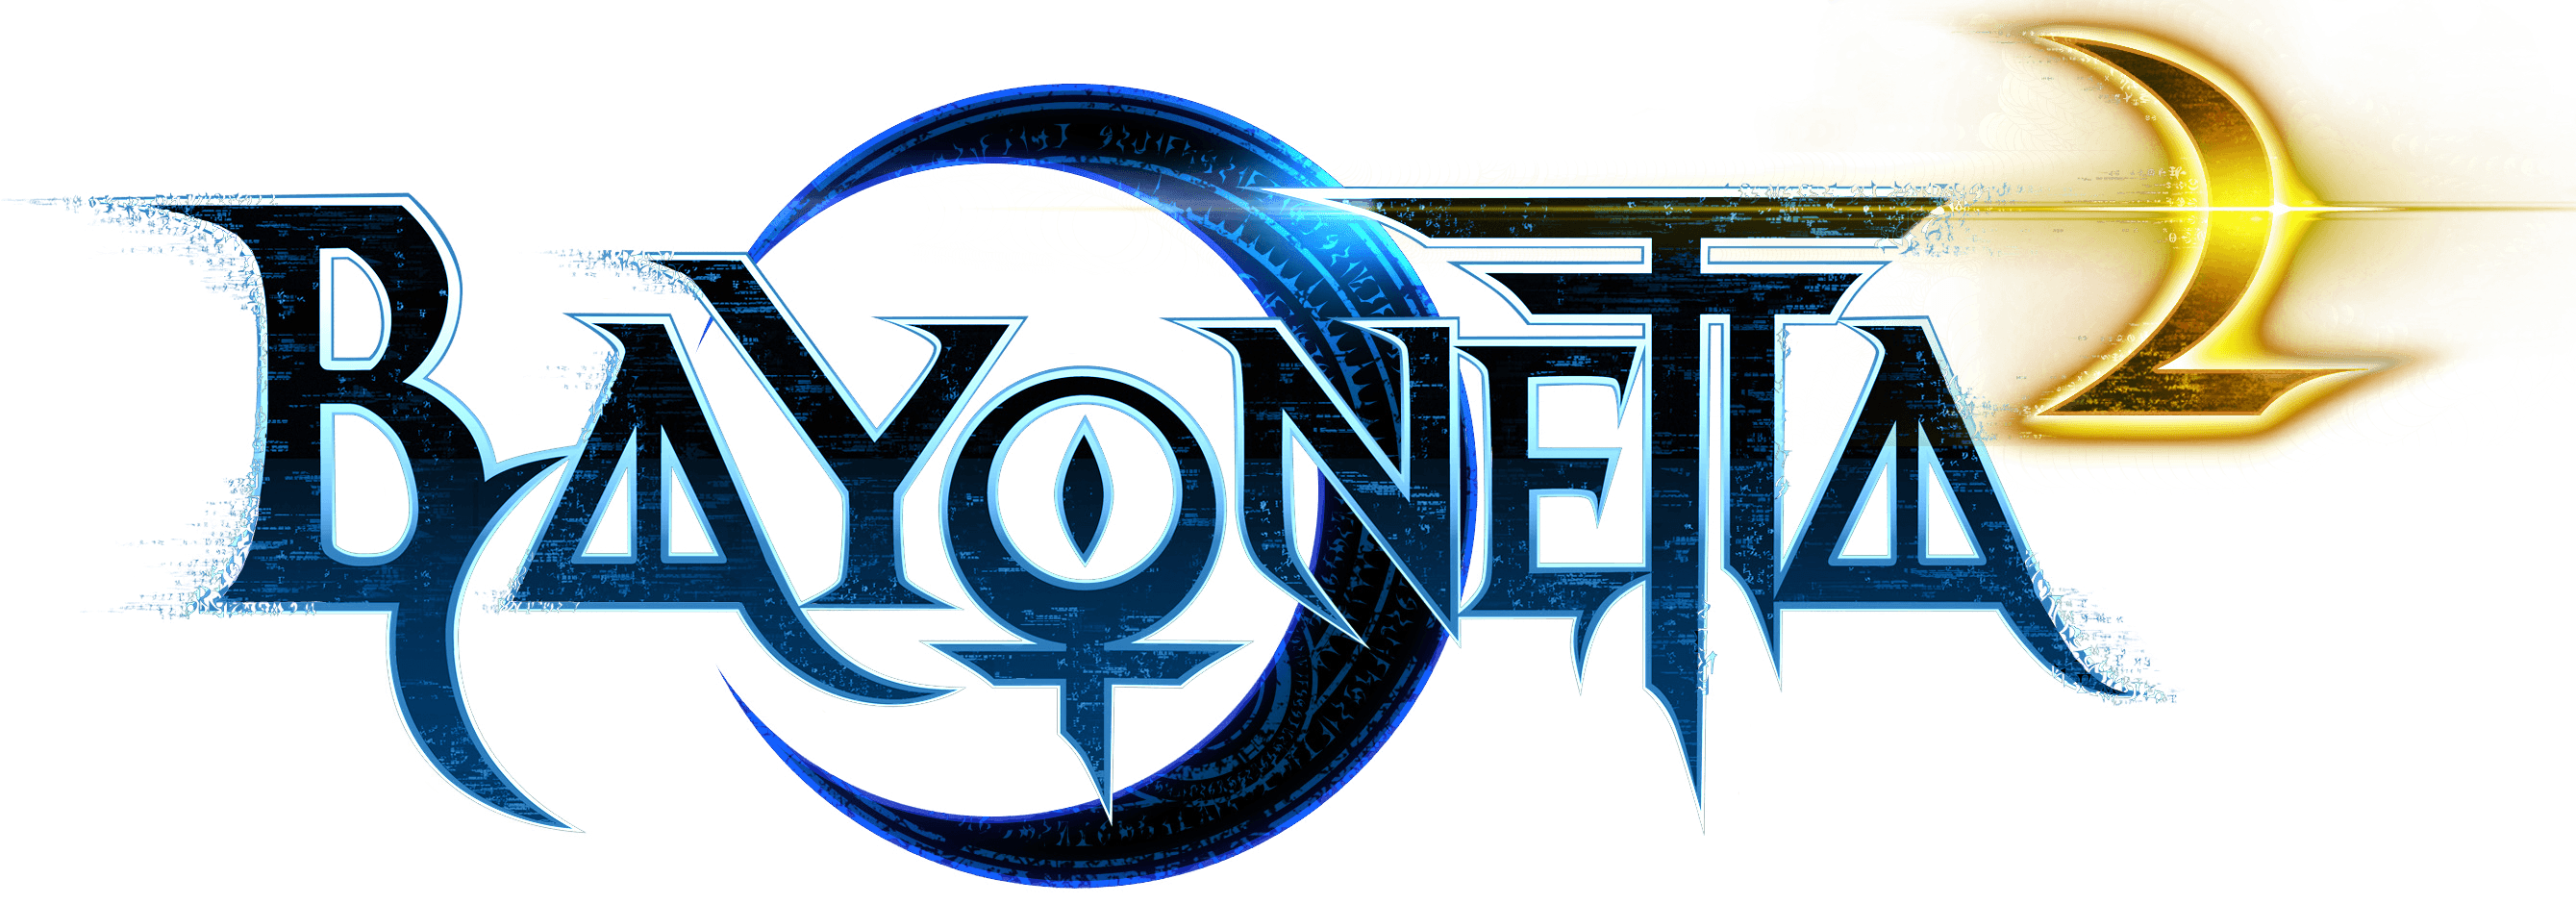 Bayonetta 2 – Demons, Angels, and Tons of Action